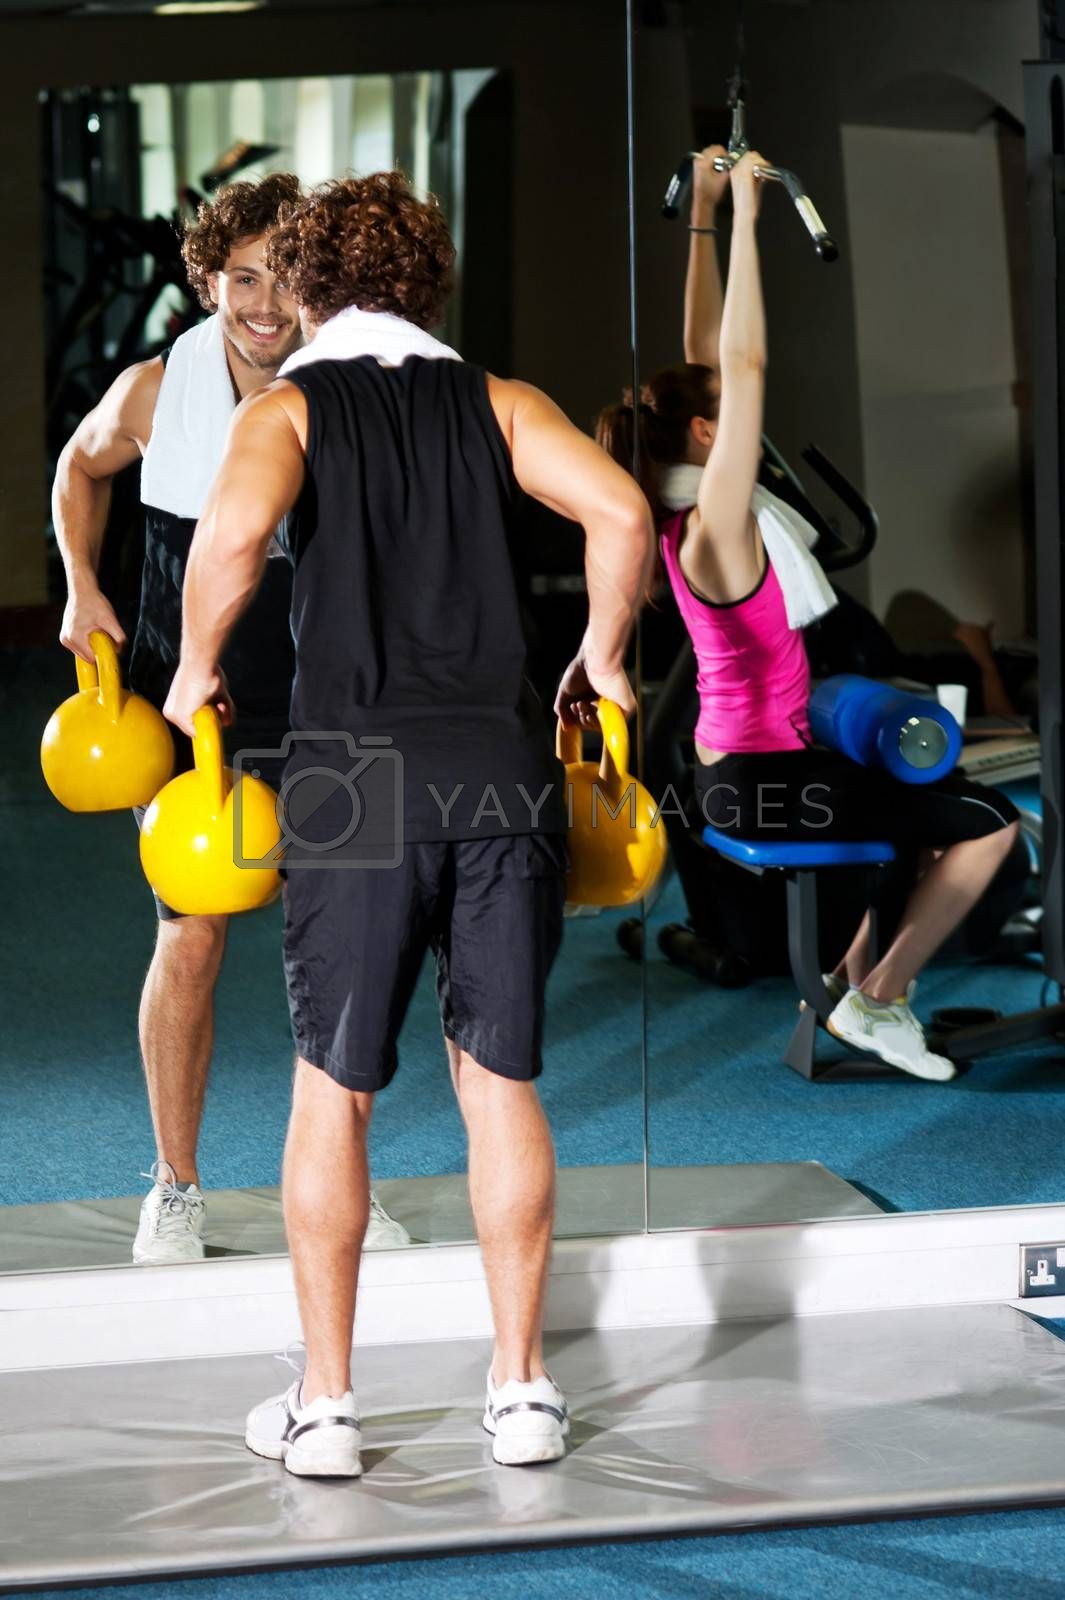 Guy and girl exercising to maintain their body fitness